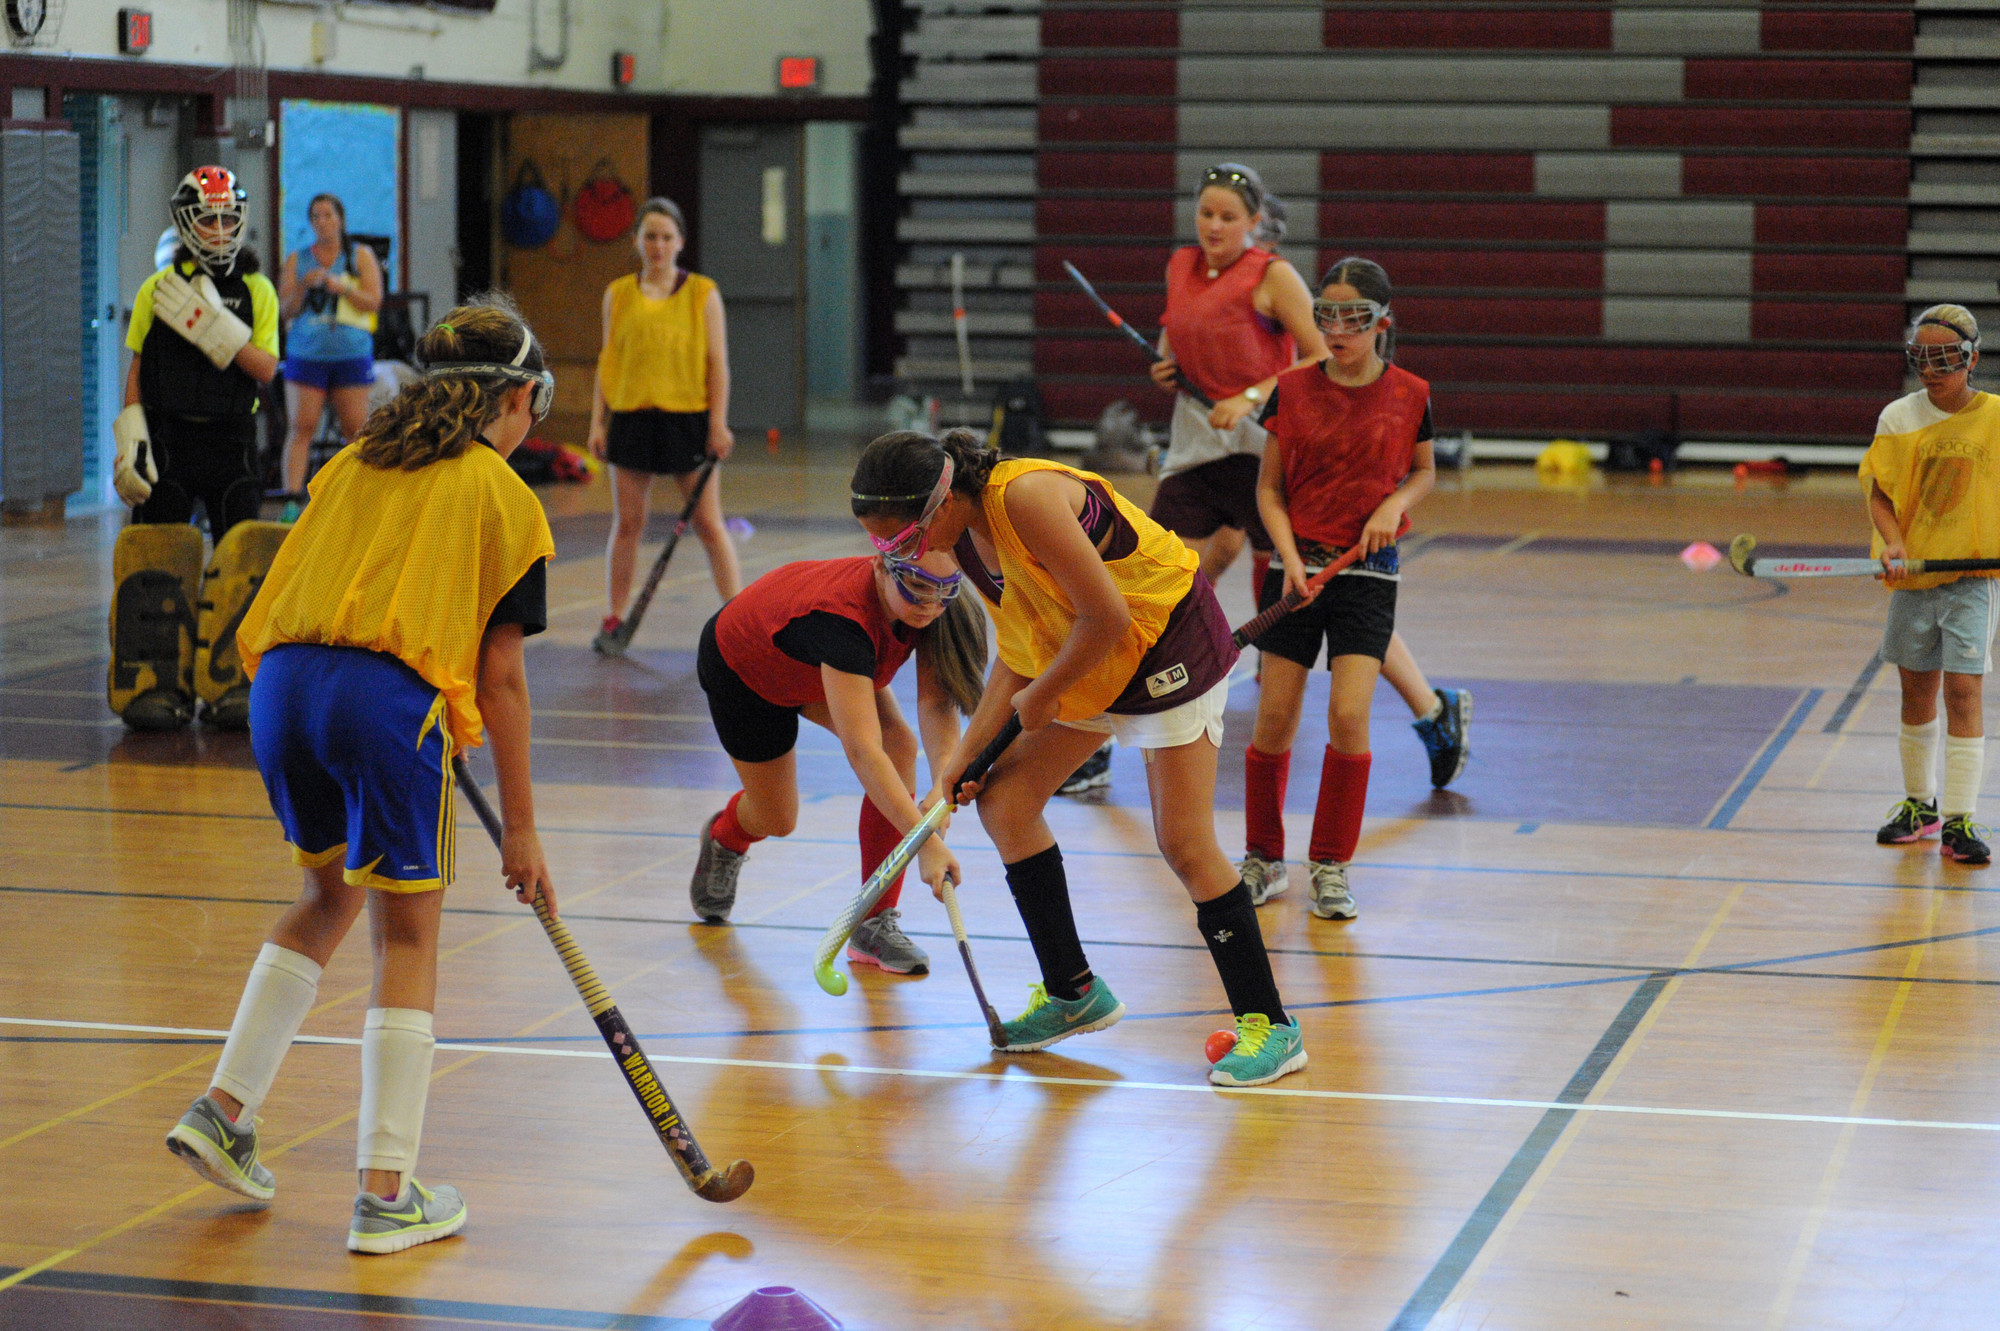 Faith Coughlin and Gabriella Sferrazza battled for a loose ball in a game of field hockey, which has been played at Clarke High School since 1959.